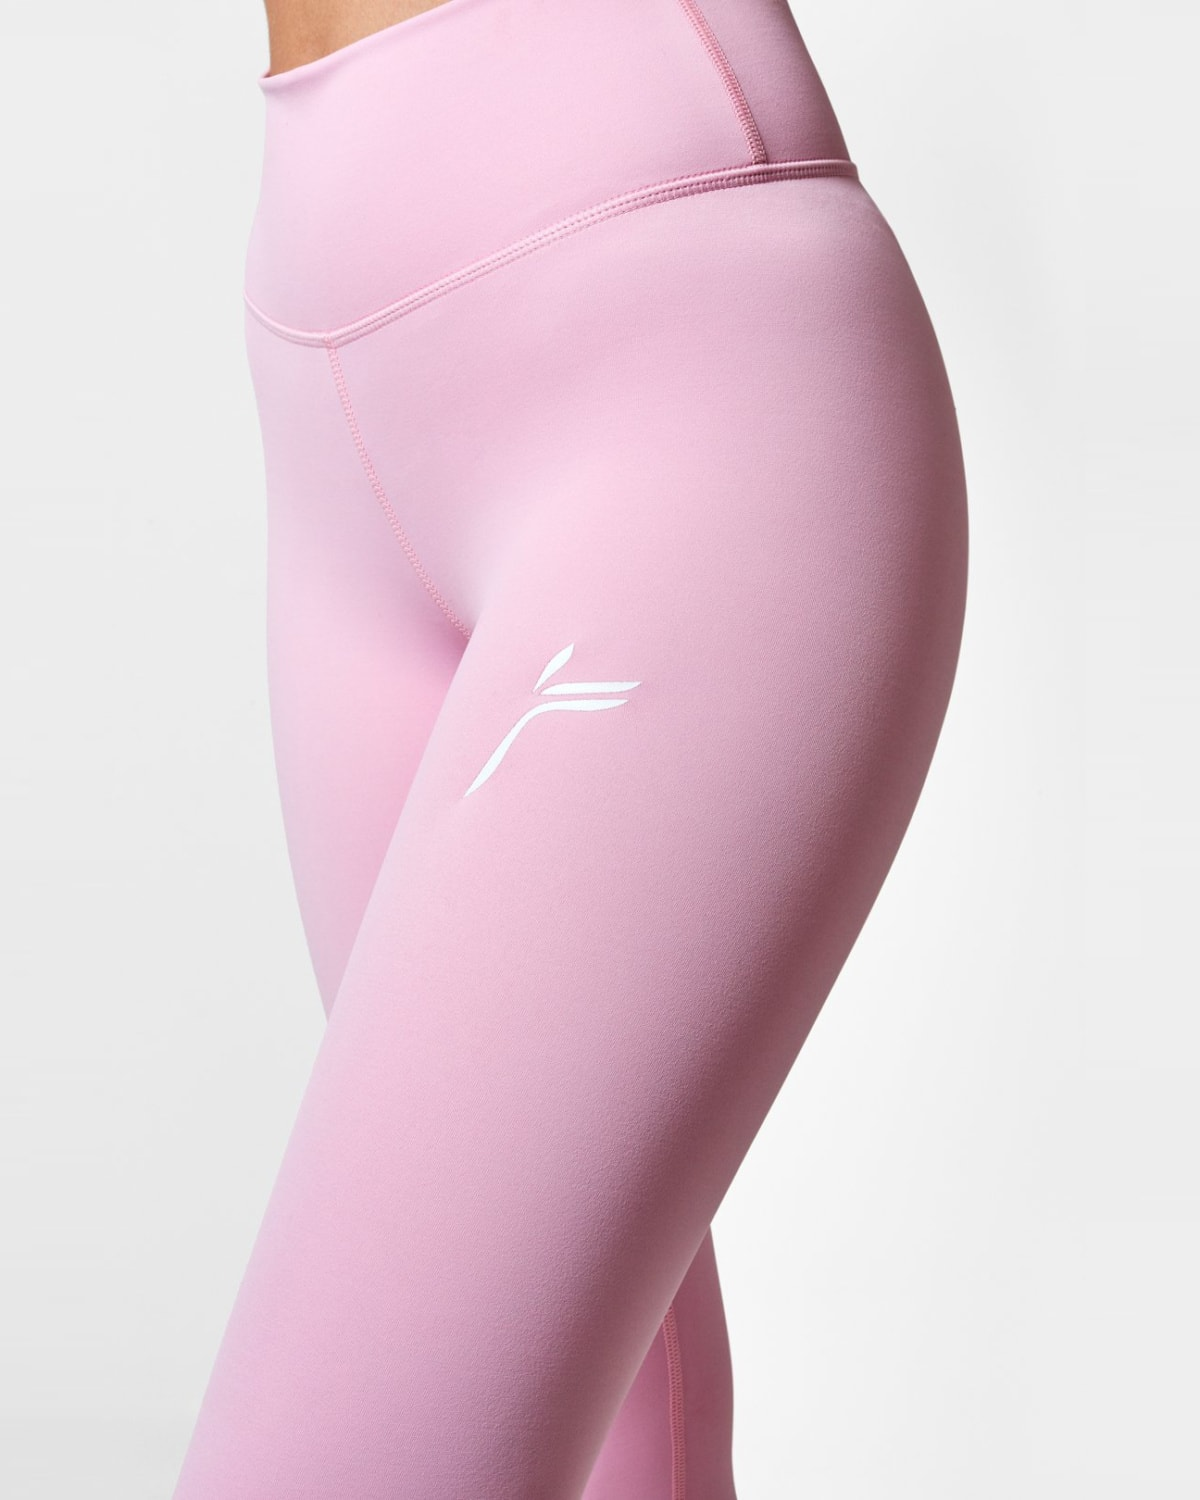 deep-pink-essential-tights_1944_2000x